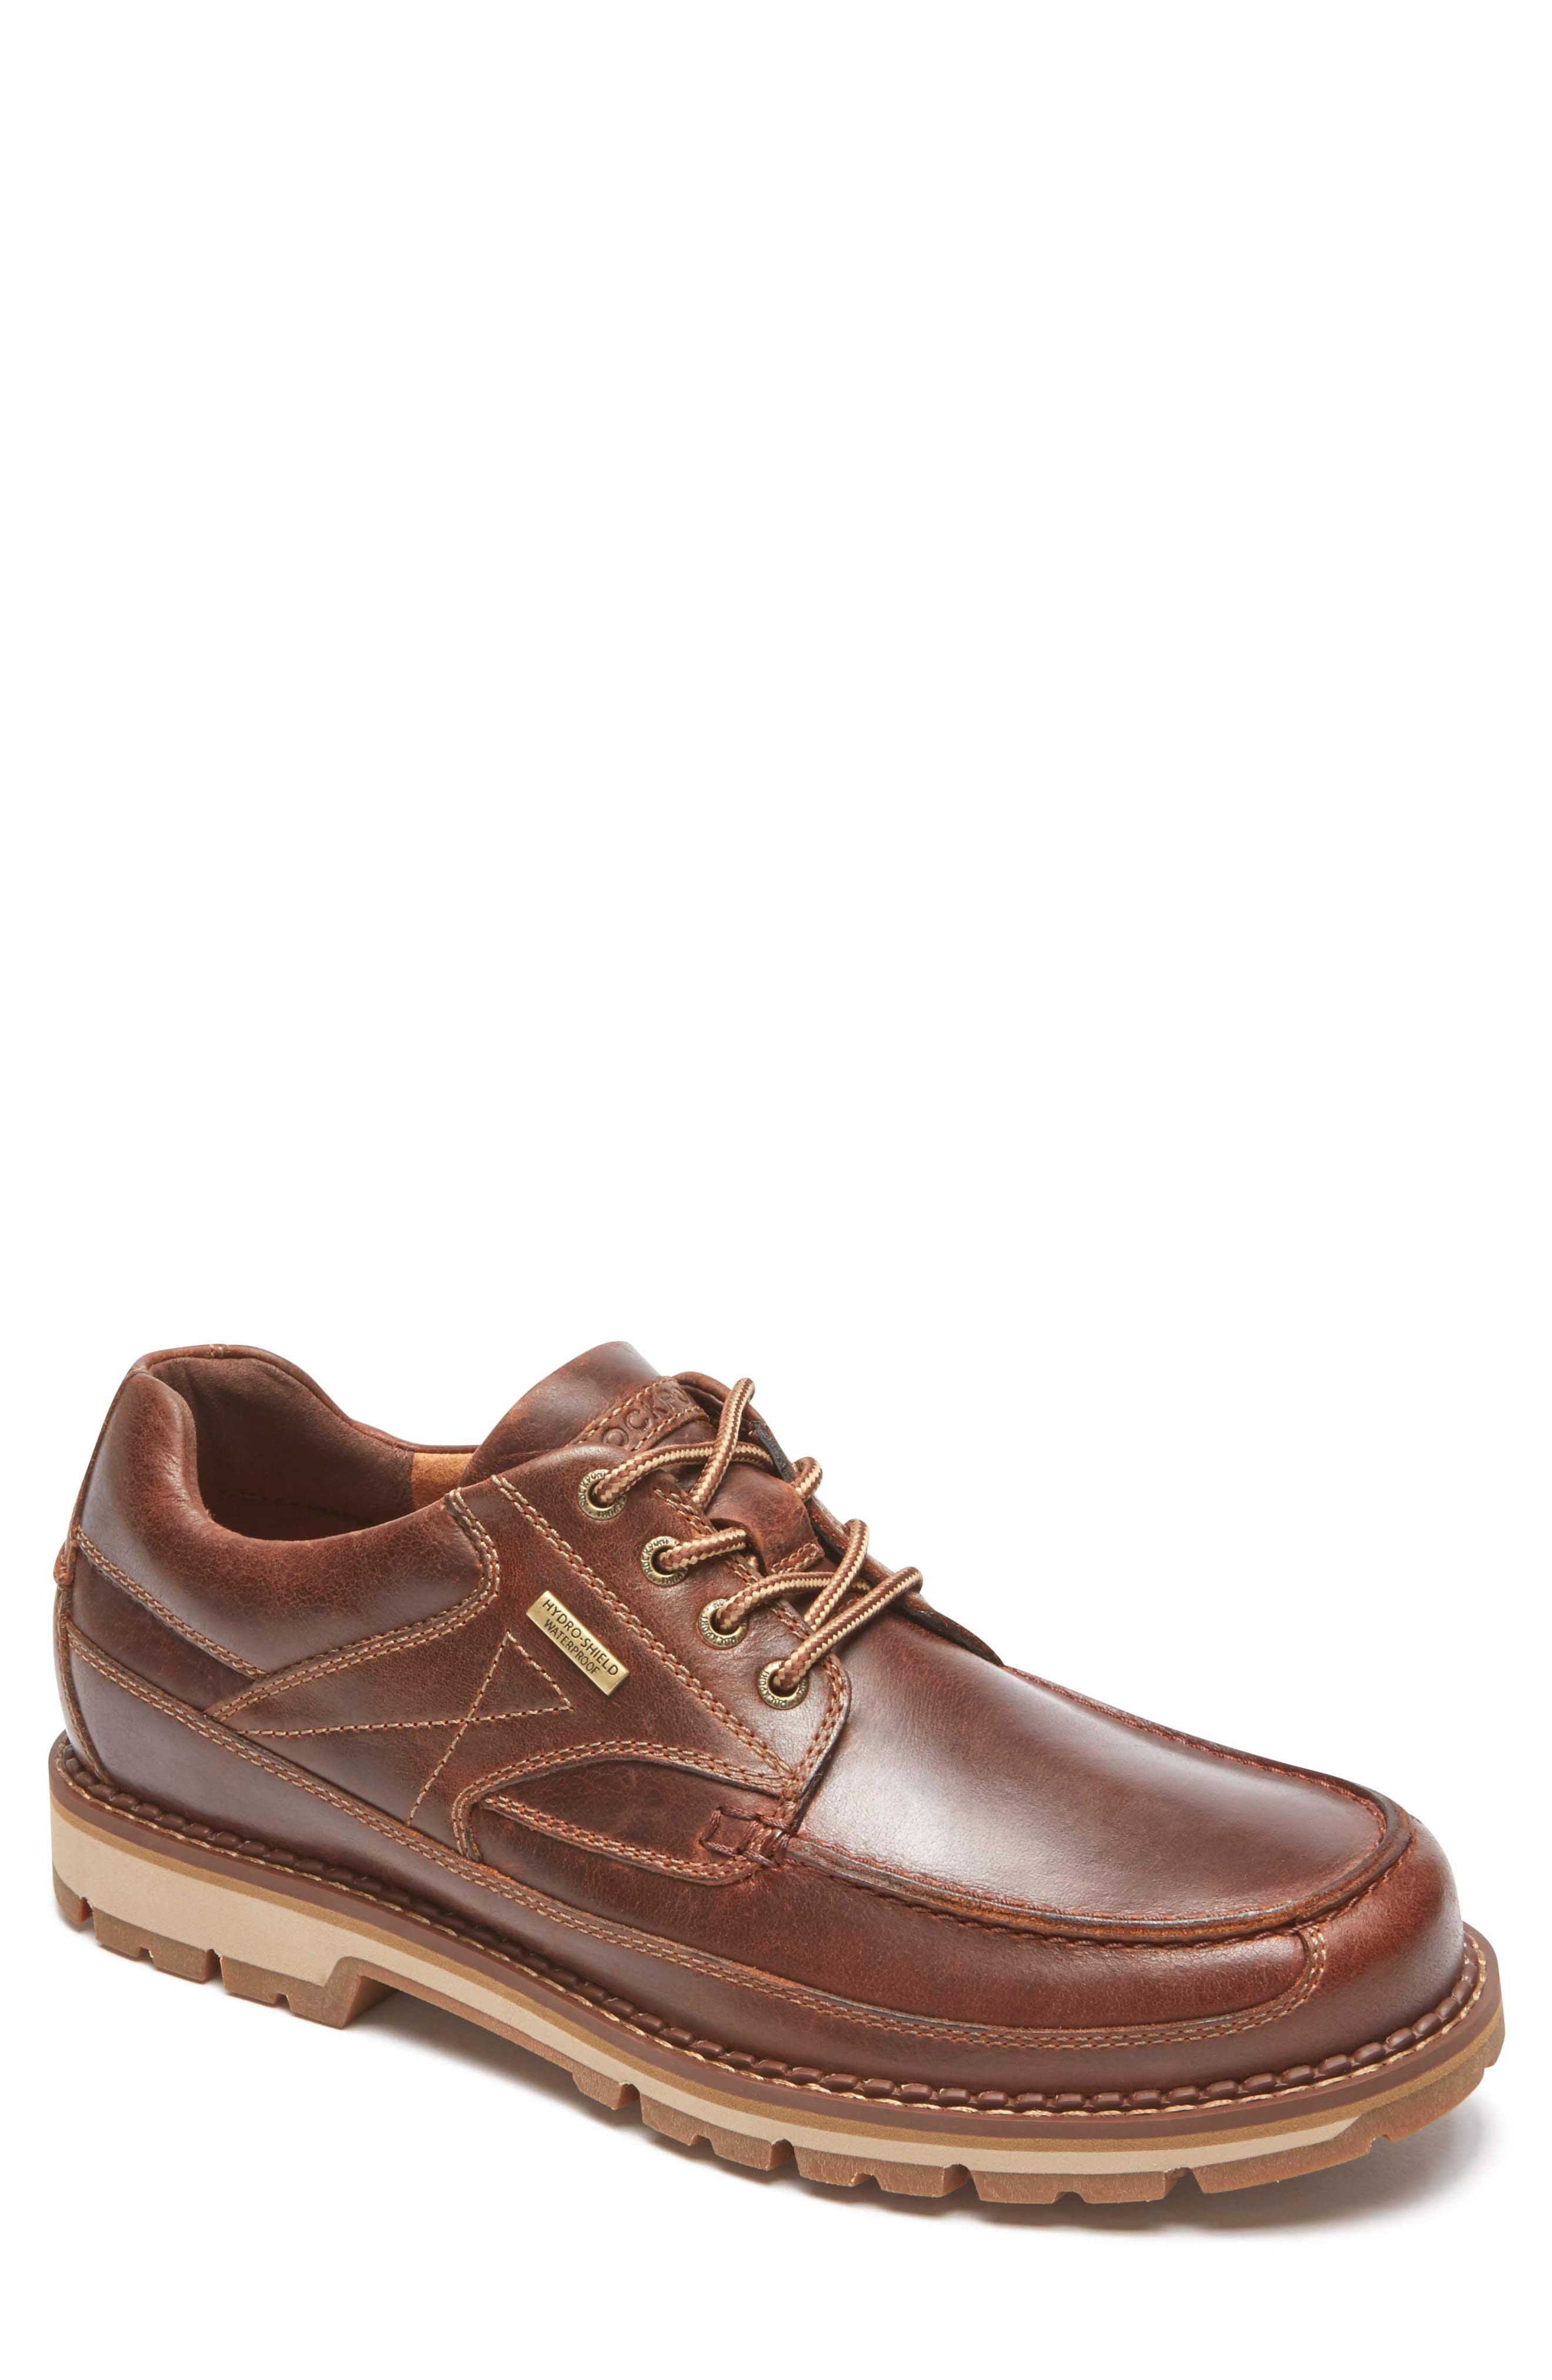 Centry Moc Toe Derby,                         Main,                         color, BROWN LEATHER